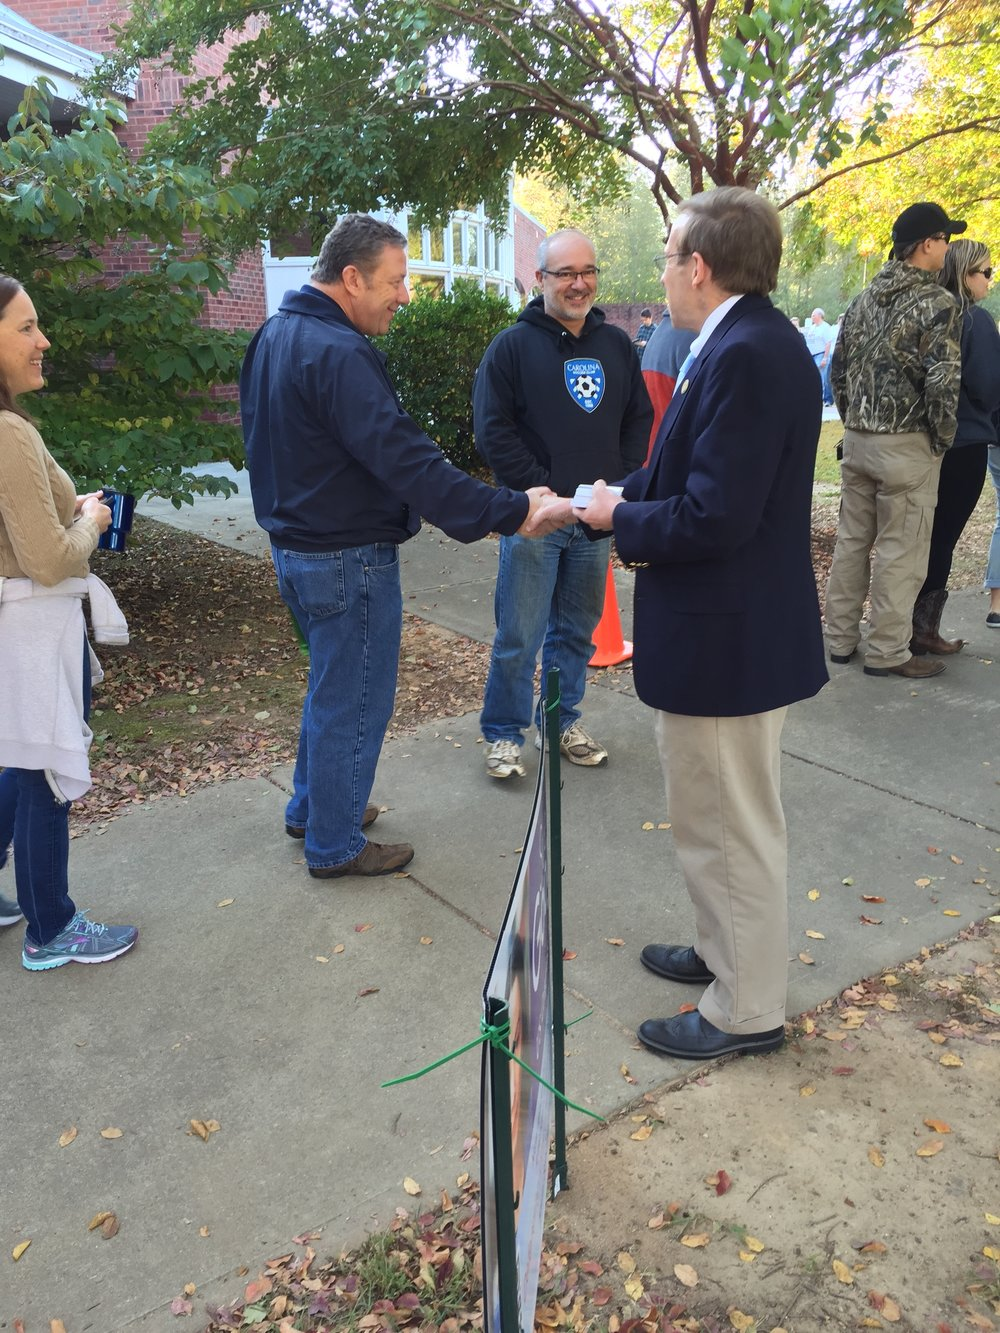 Meeting early voters in Holly Springs, October 28, 2016.